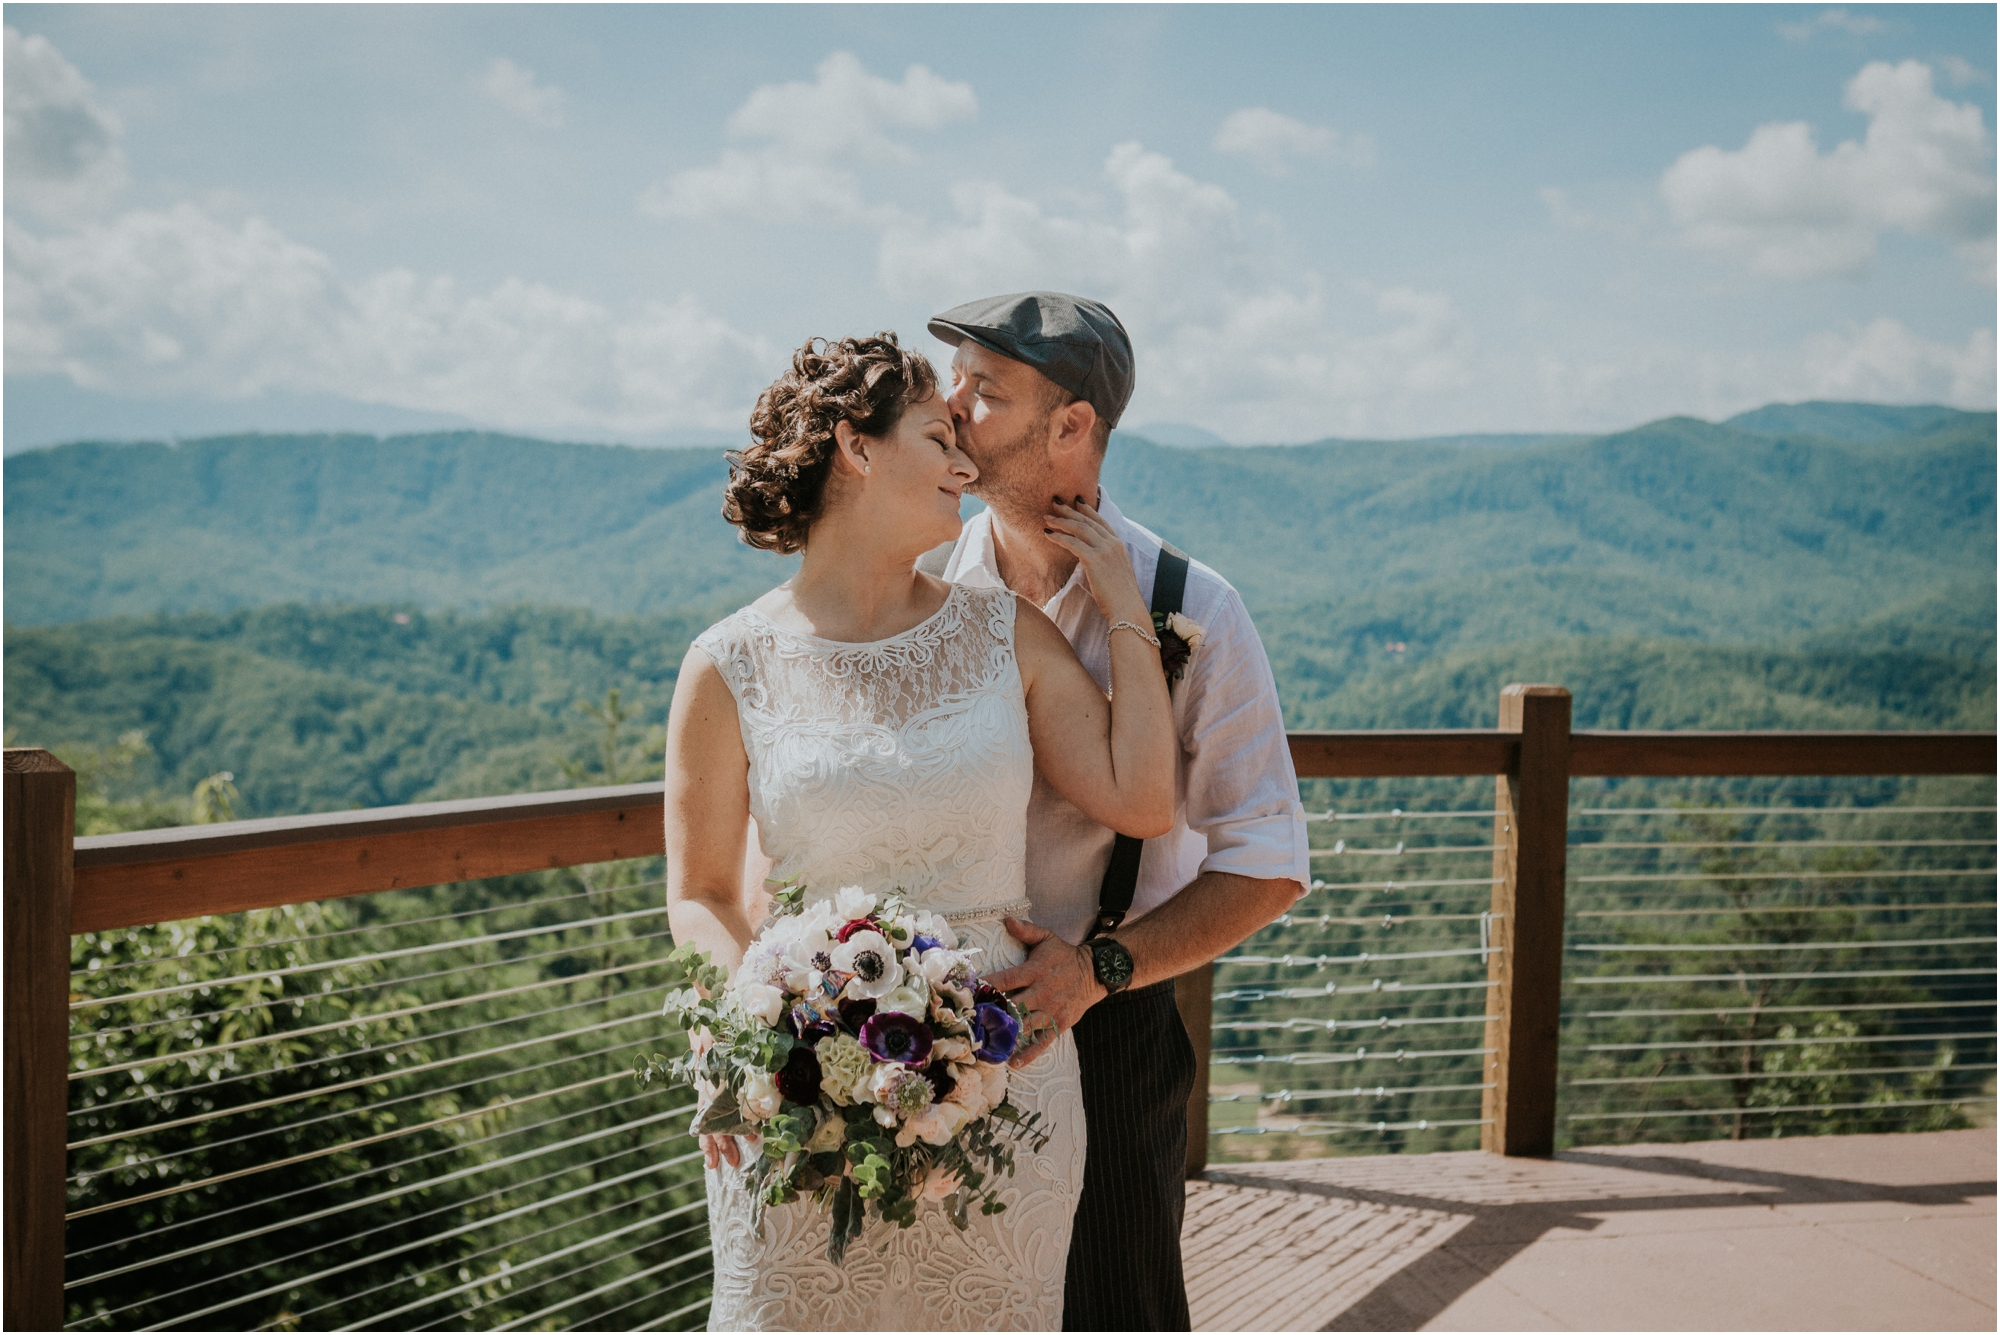 cabin-parkside-resort-the-magnolia-venue-tennessee-mountain-views-intimate-wedding_0115.jpg